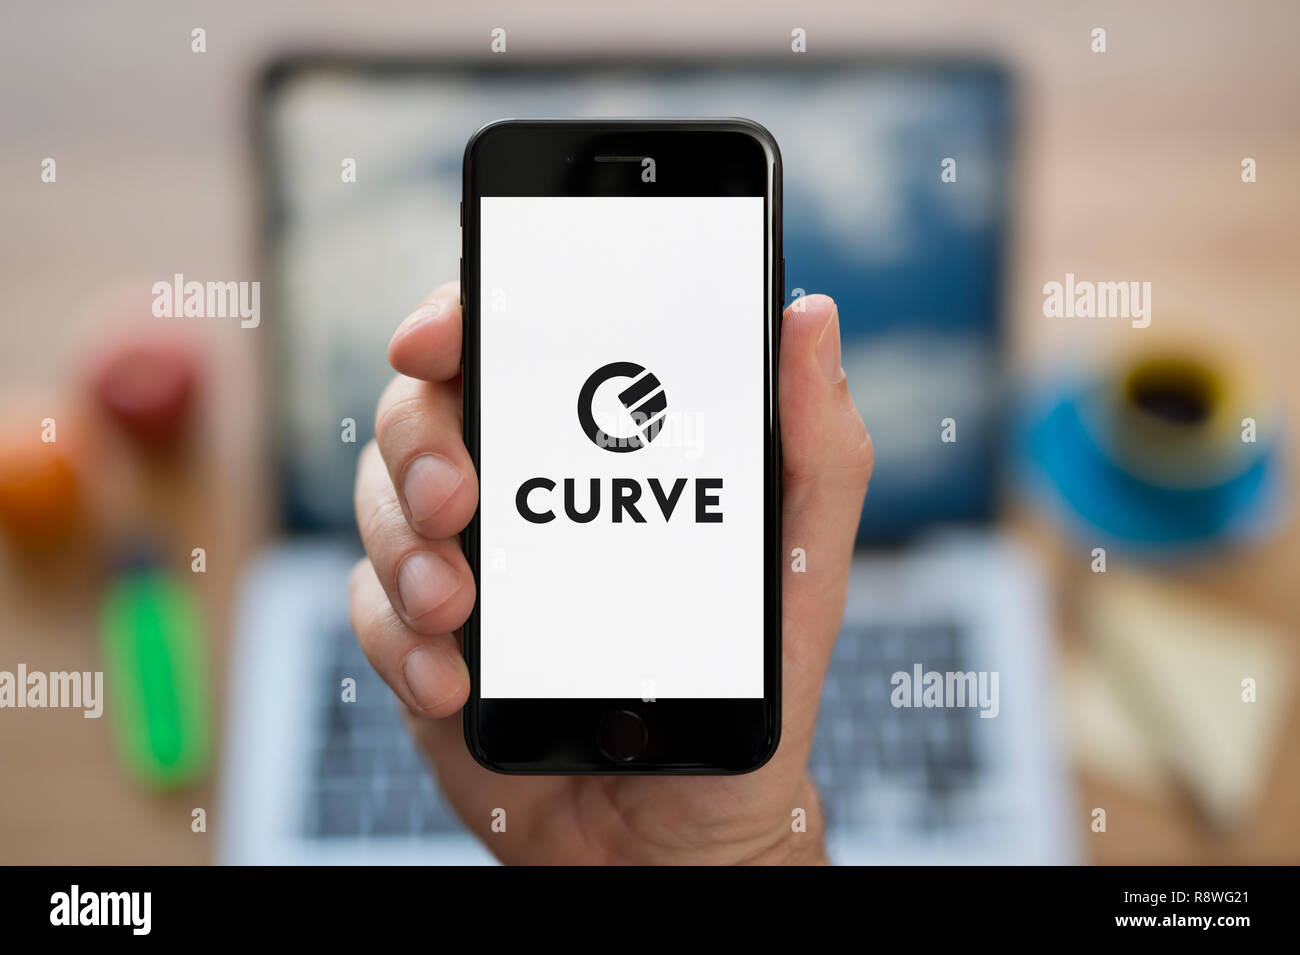 A man looks at his iPhone which displays the Curve logo (Editorial use only). - Stock Image